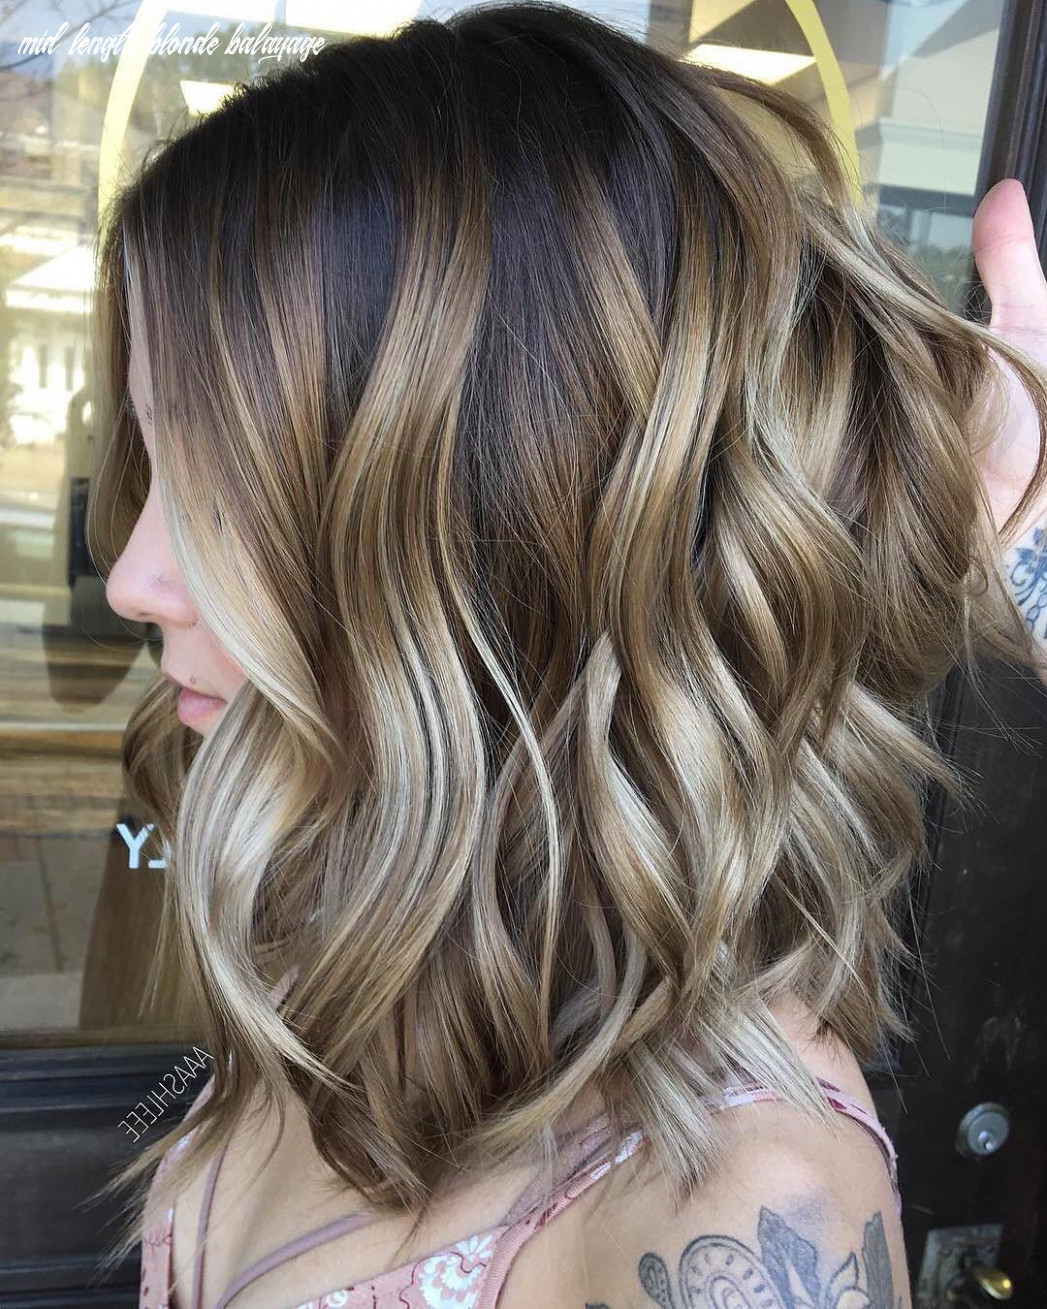 11 ombre balayage hairstyles for medium length hair, hair color 11 mid length blonde balayage